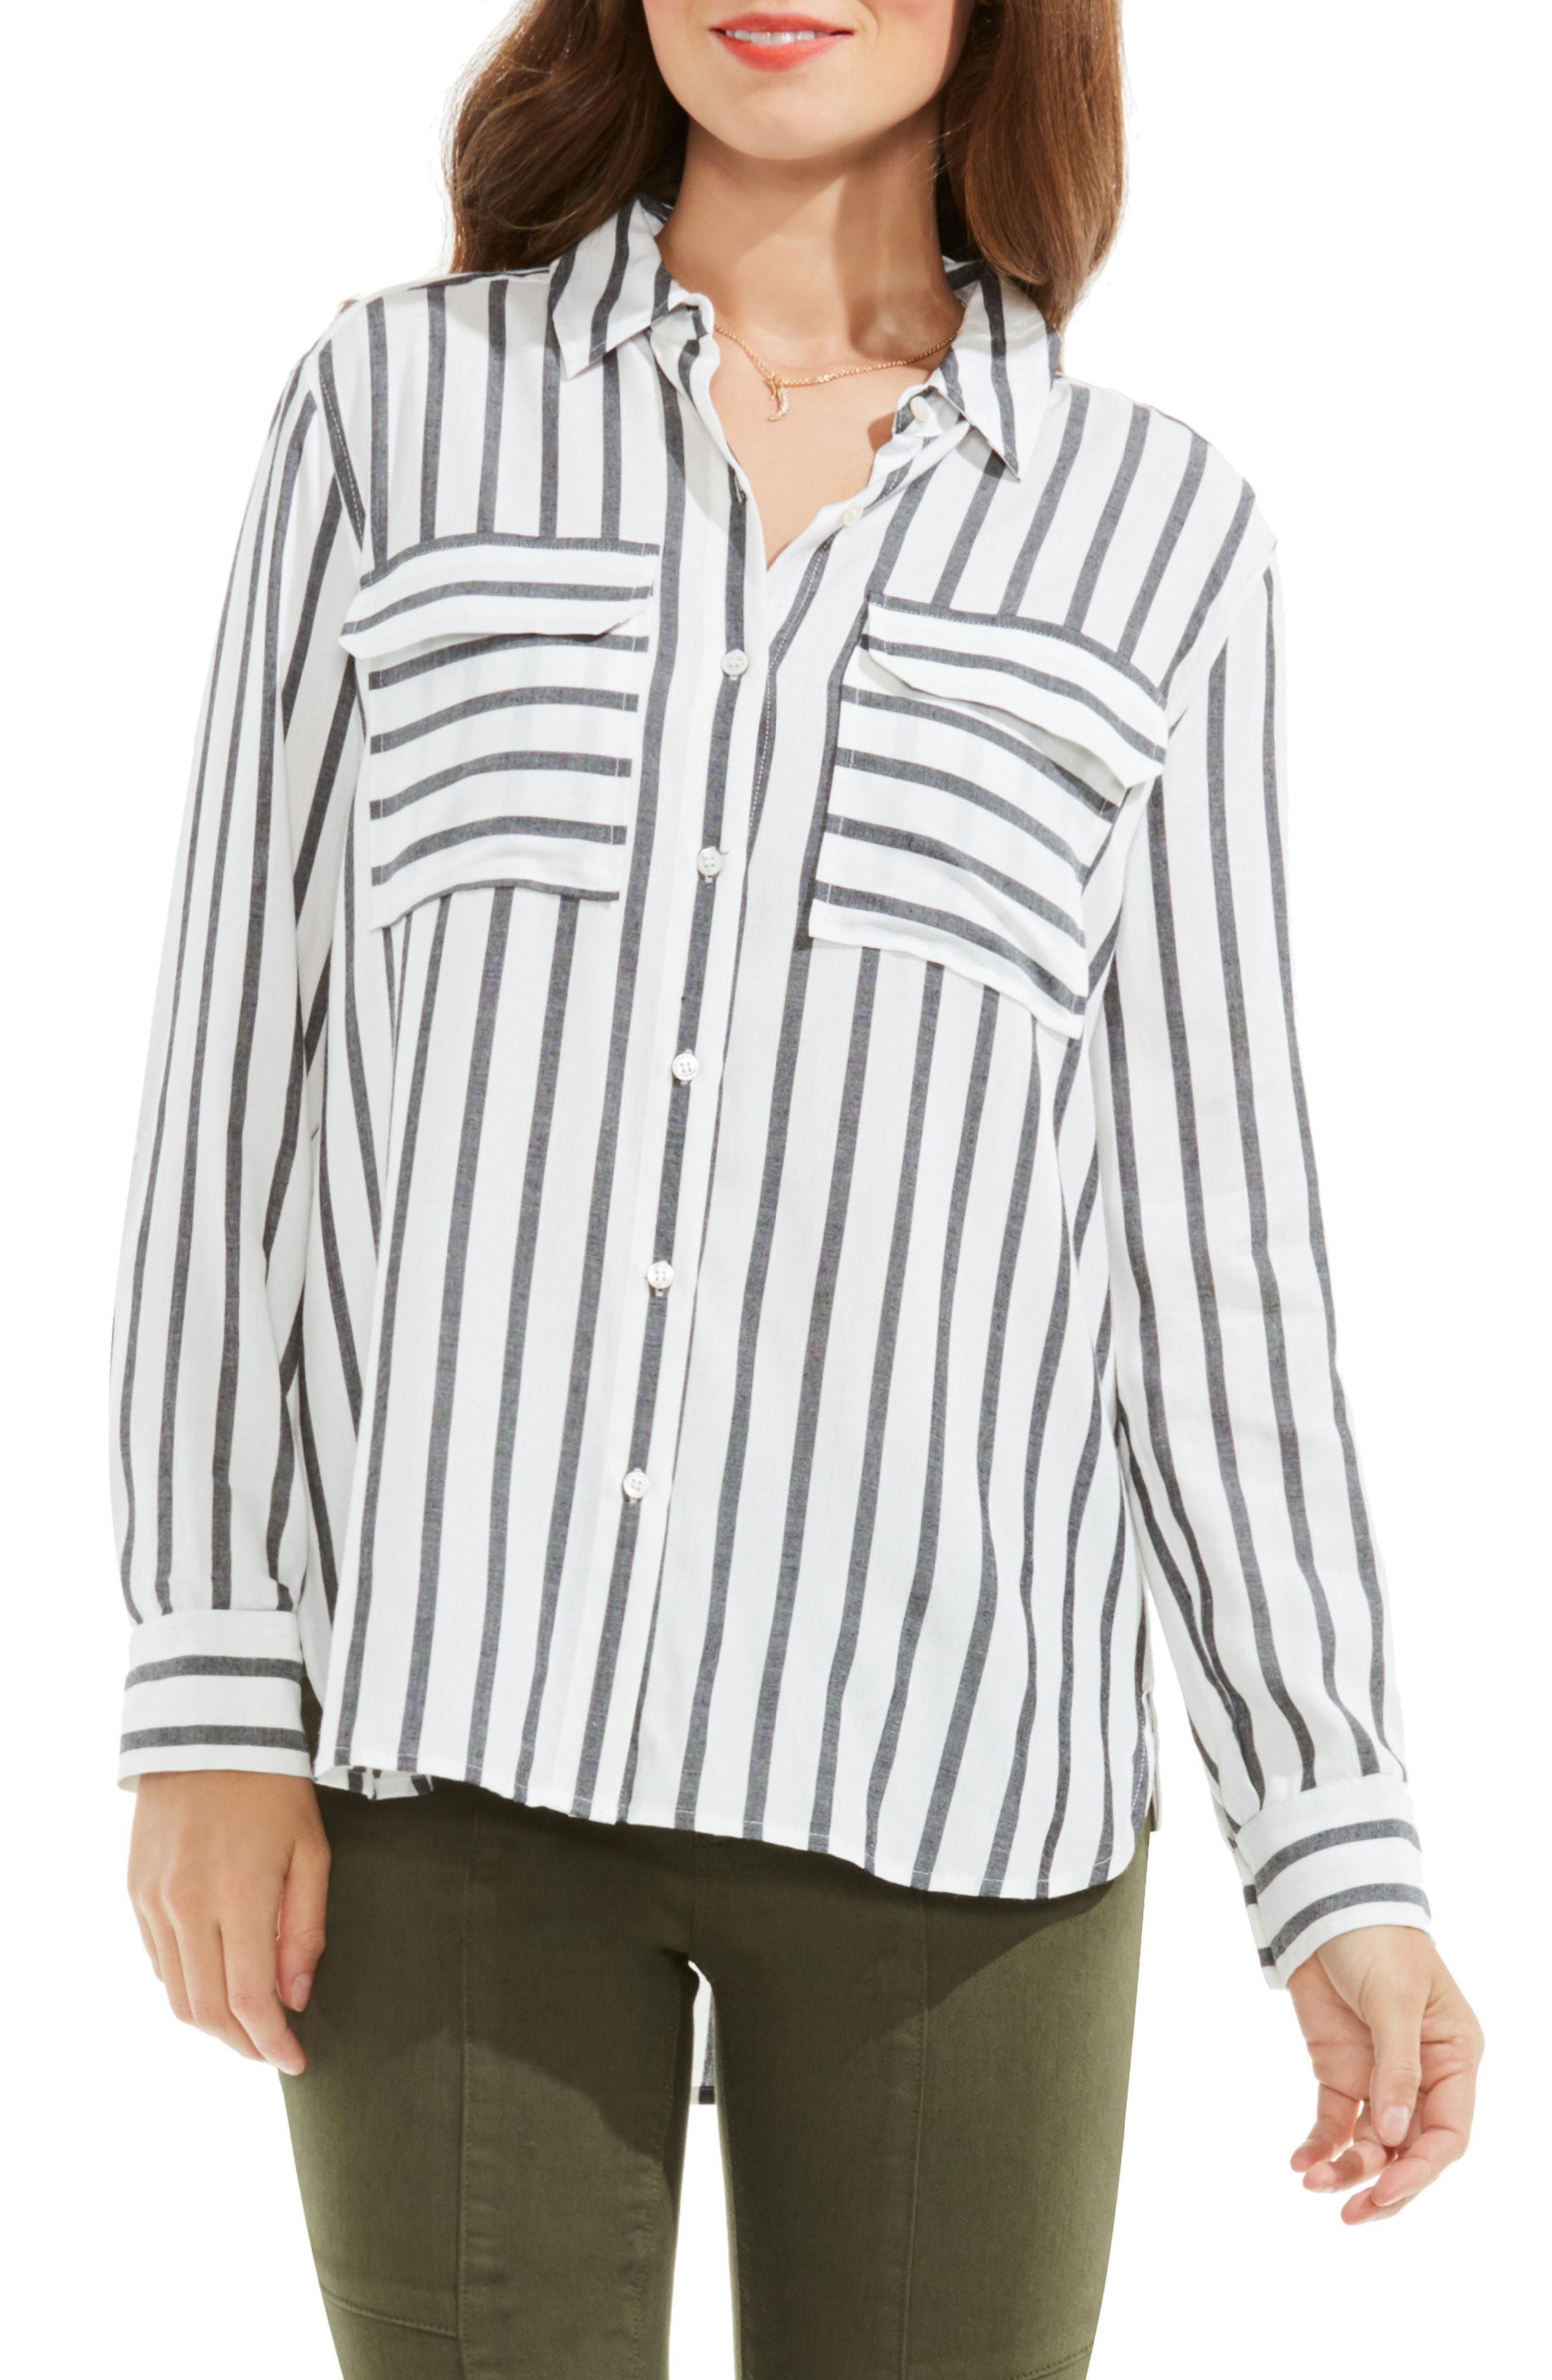 Main Image - Two by Vince Camuto Stripe Utility Shirt